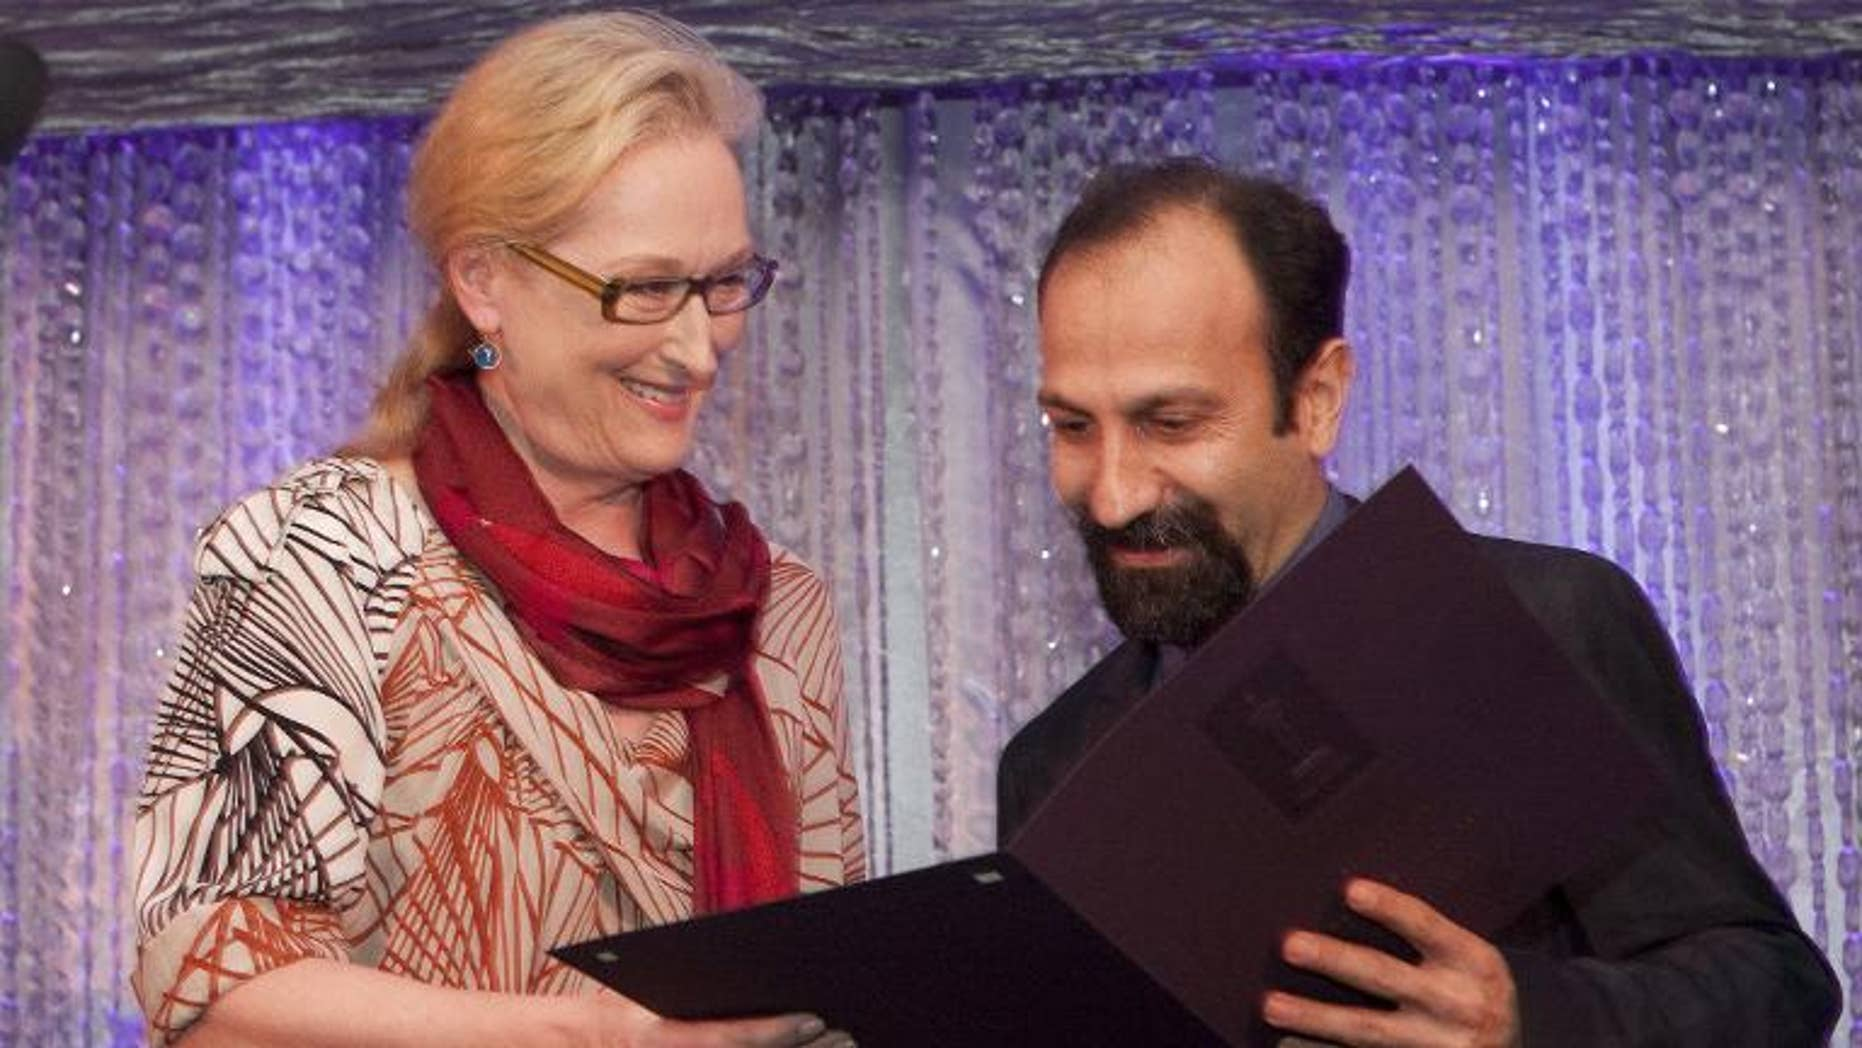 Actress Meryl Streep and Iranian director Ashgar Farhadi on February 24, 2012 in Beverly Hills, California